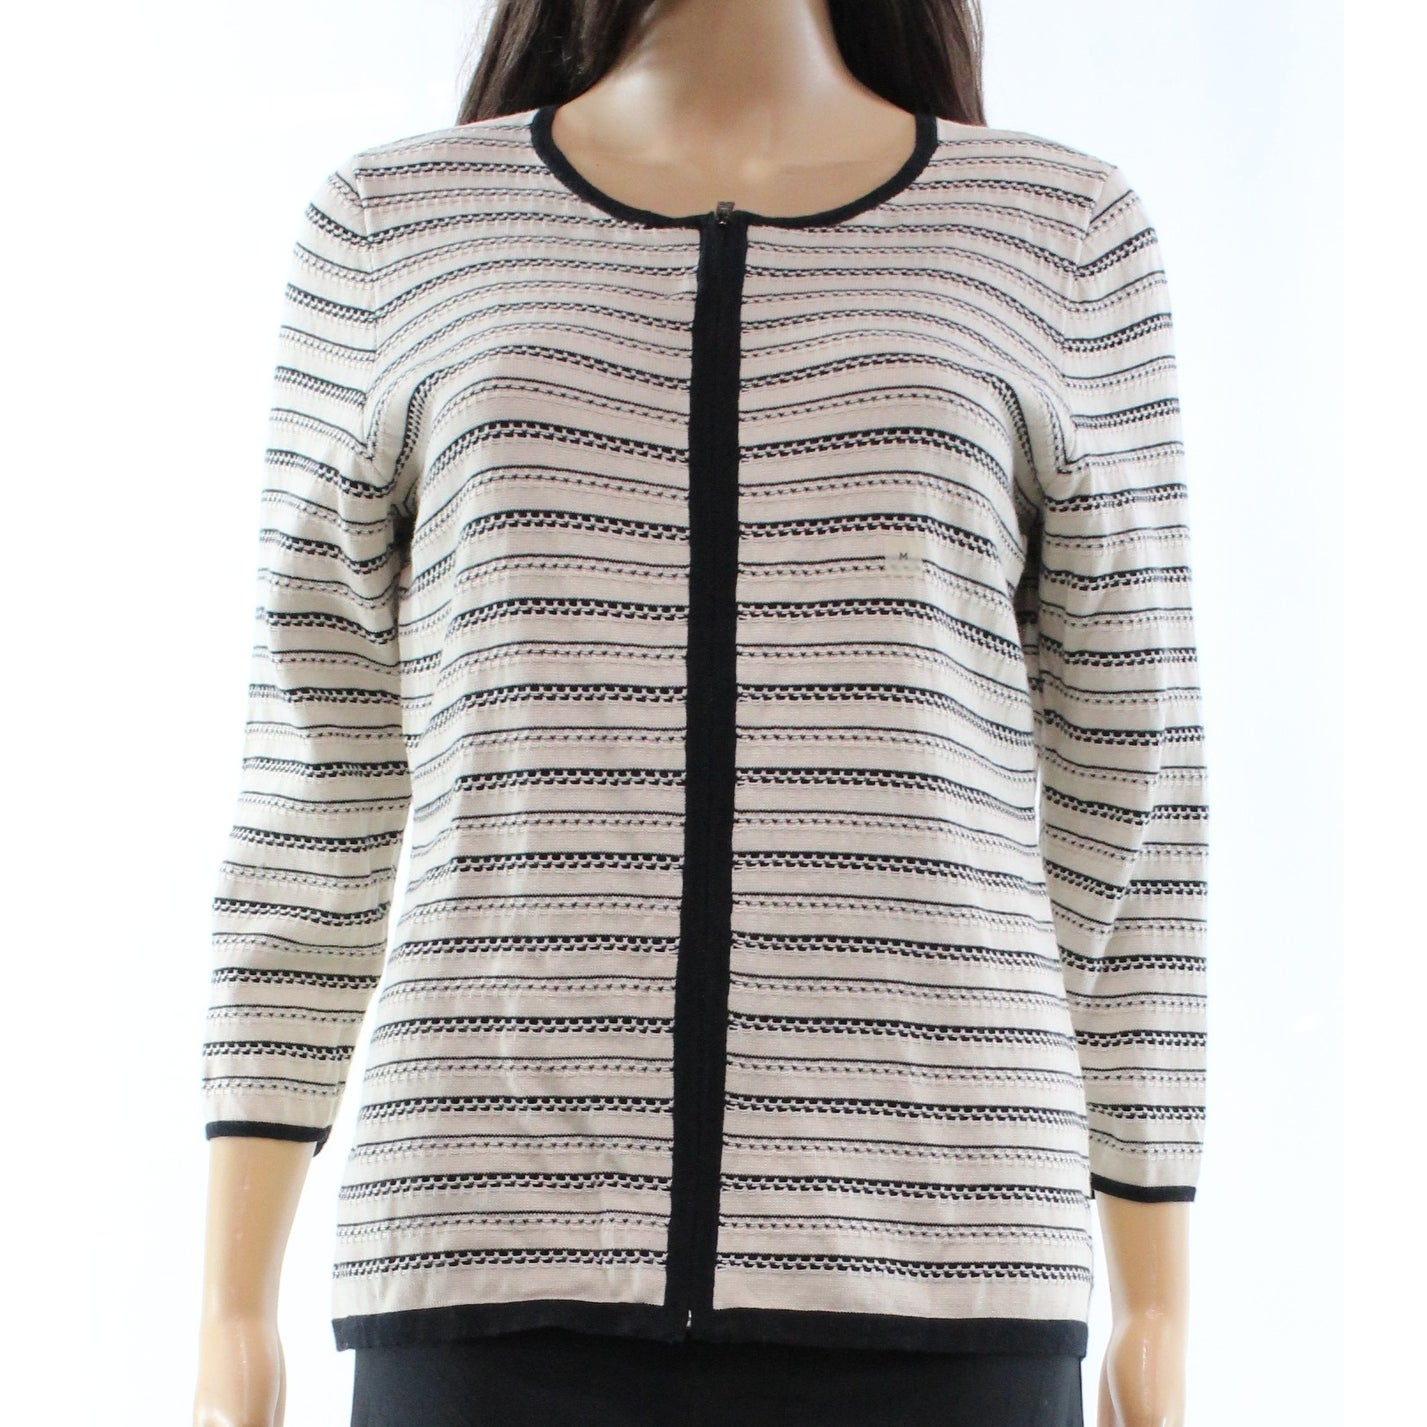 8f4f9c2e9b Shop Ann Taylor NEW Beige Black Stripe Womens Size Medium M Full Zip Sweater  - Free Shipping On Orders Over  45 - Overstock.com - 18359473